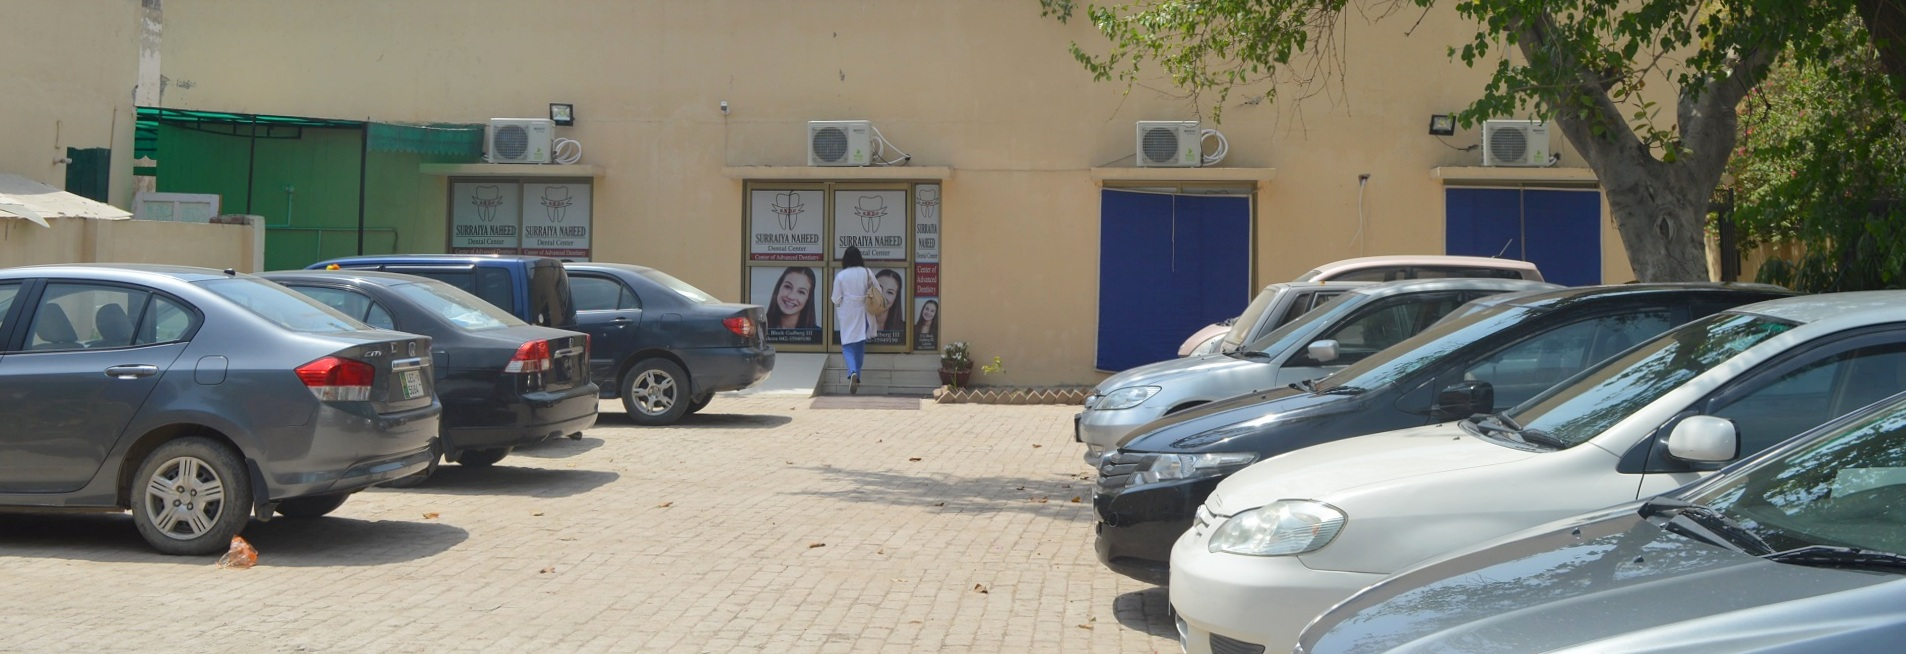 Surraiya naheed dental center front